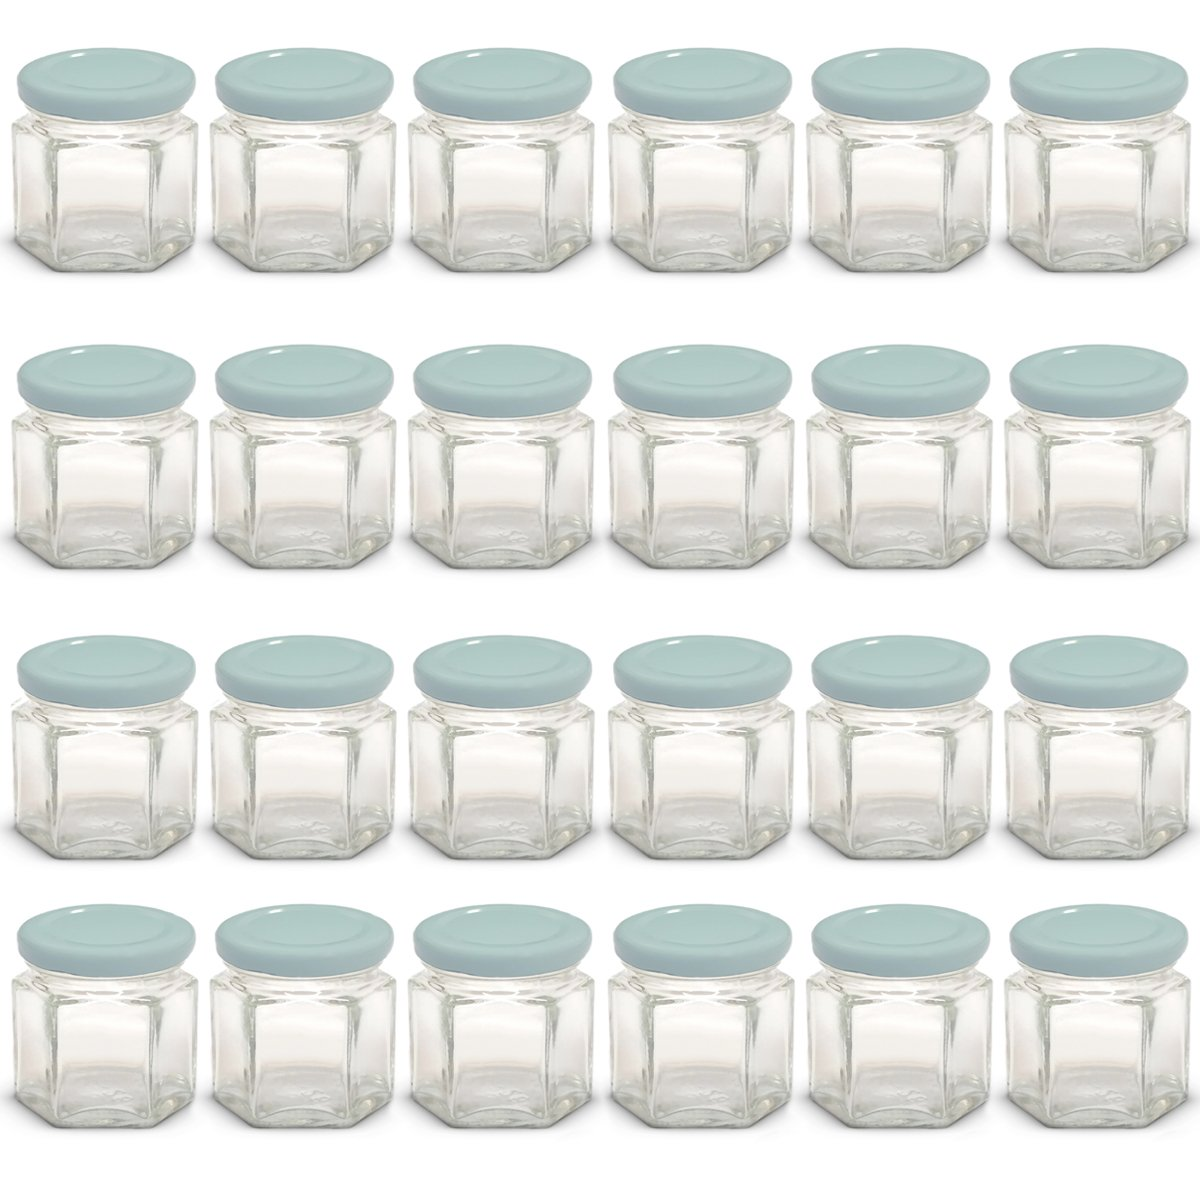 1.5 oz Hexagon Mini Glass Jars with Light Blue Lids and Labels (Pack of 24)